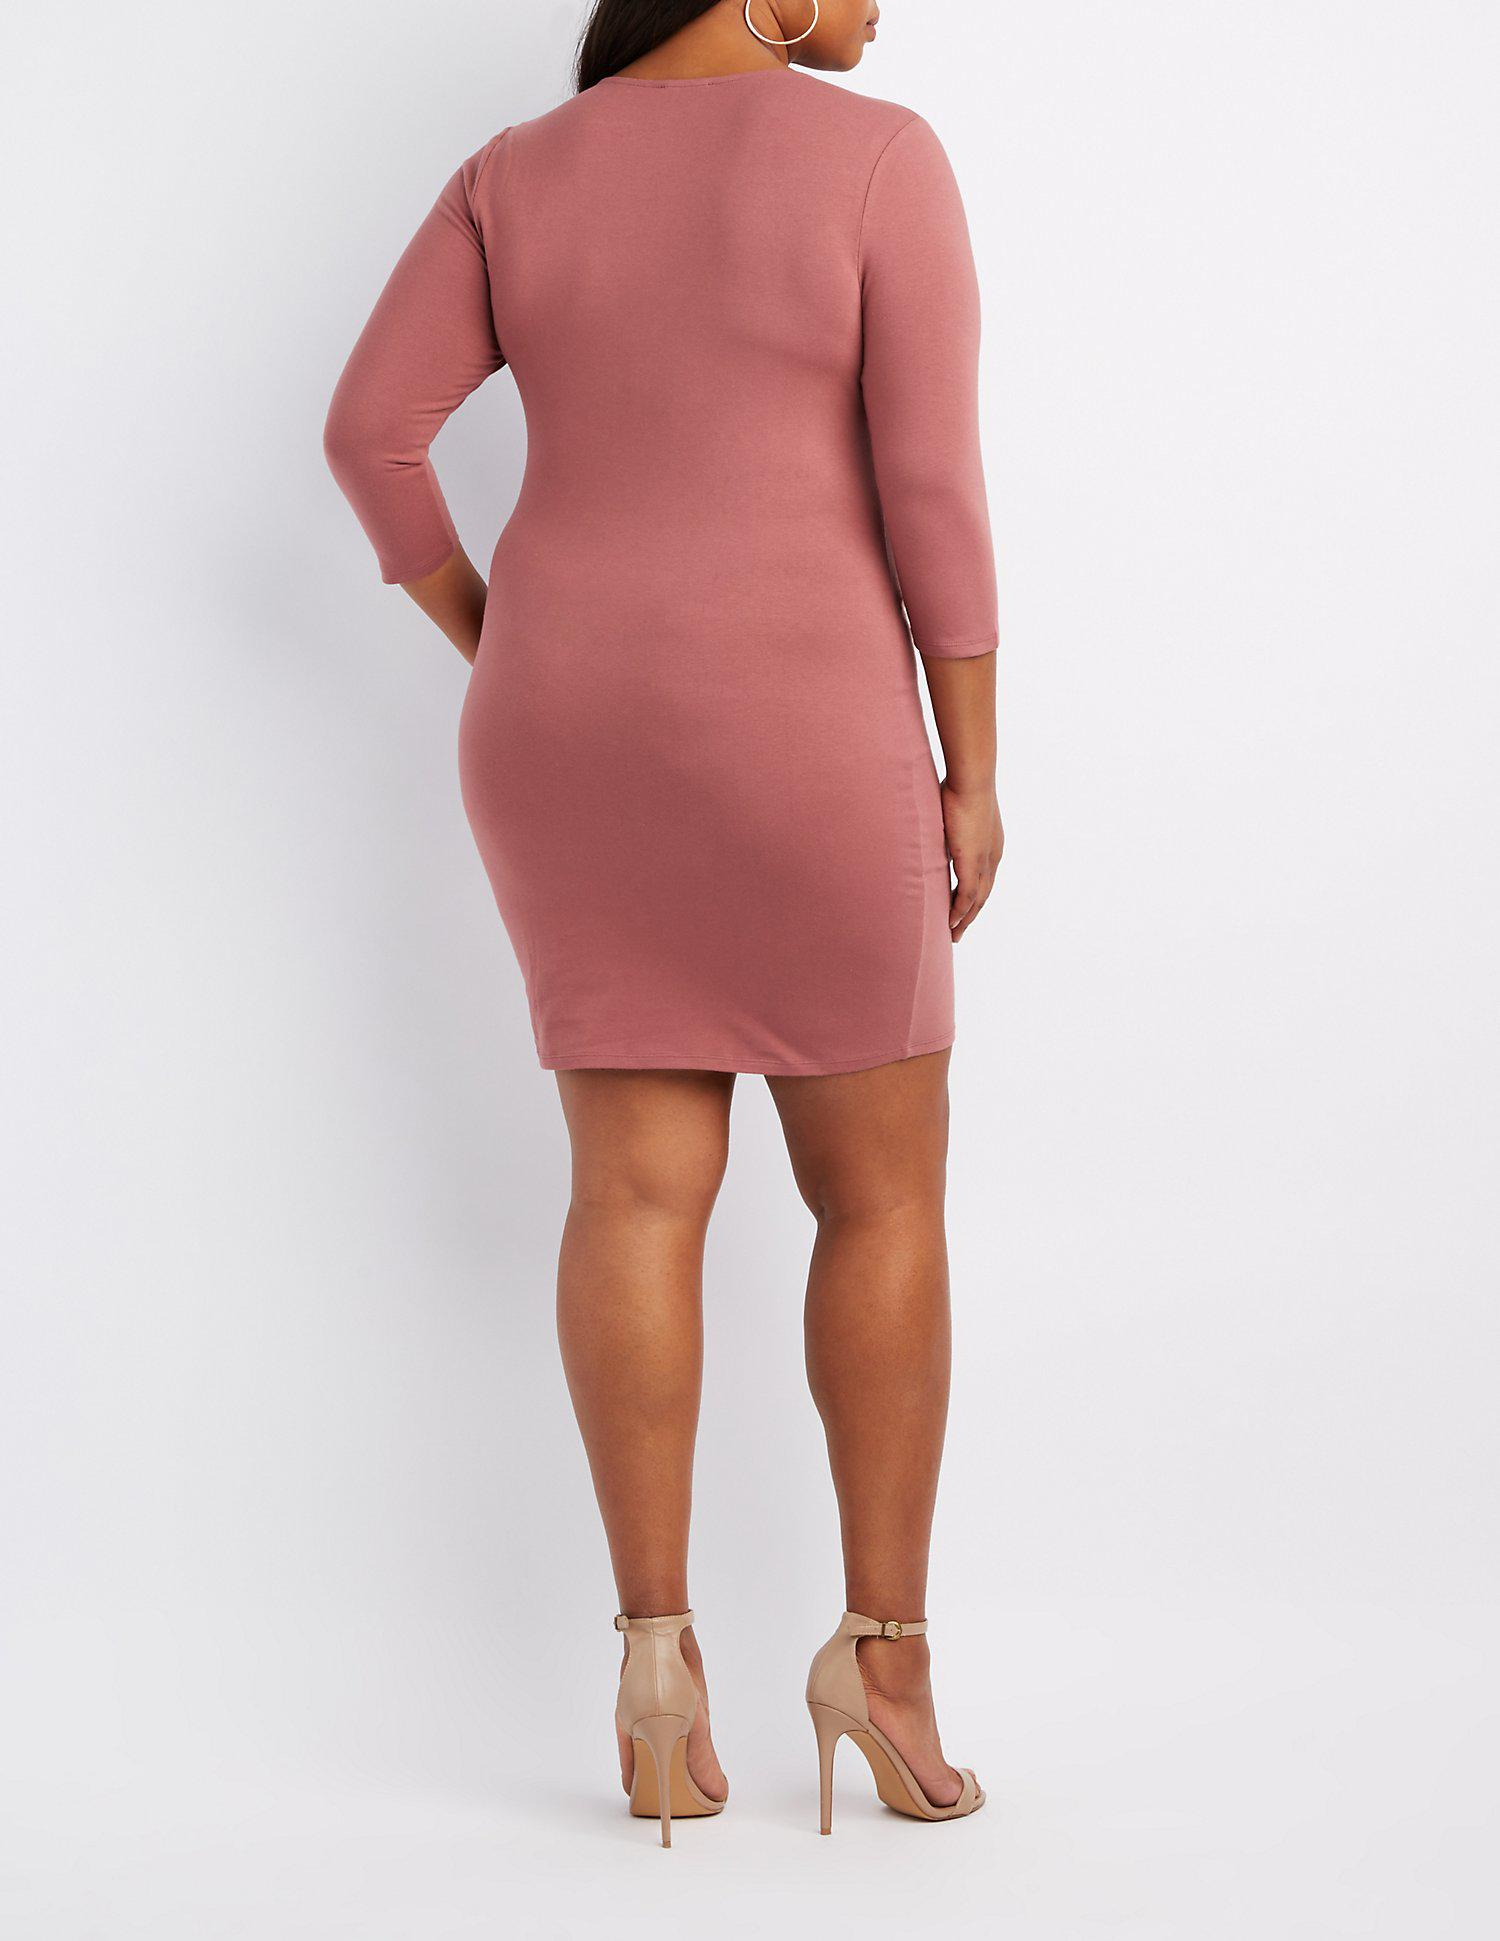 42443e26987fe Lyst - Charlotte Russe Plus Size Caged-front Bodycon Dress in Pink